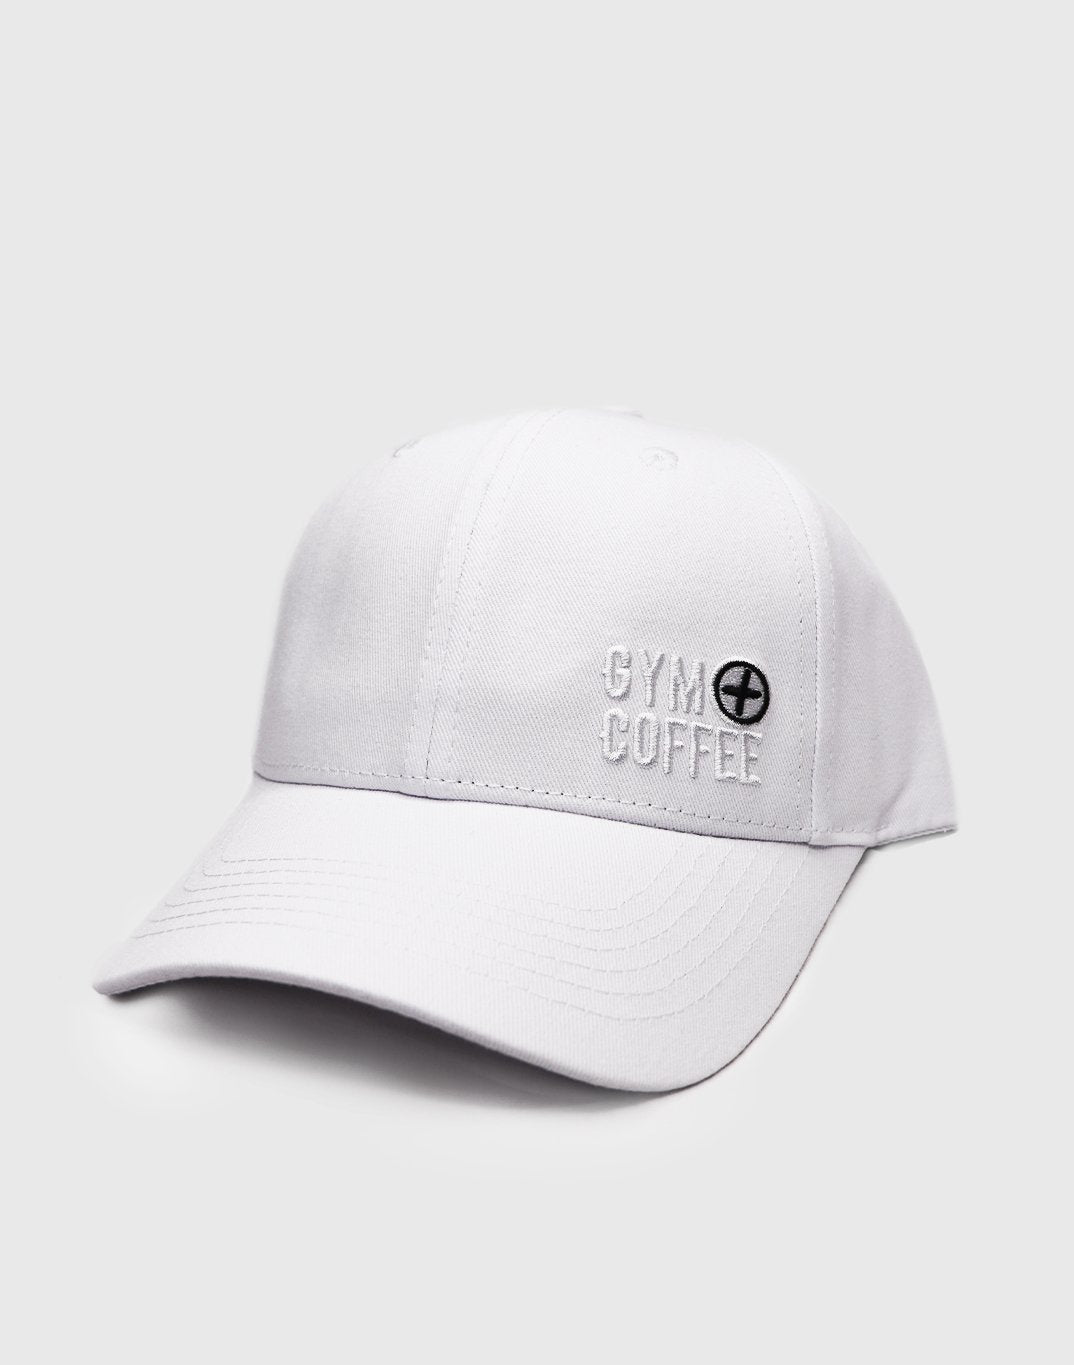 Gym Plus Coffee Hat Hats Off Cap in White Designed in Ireland